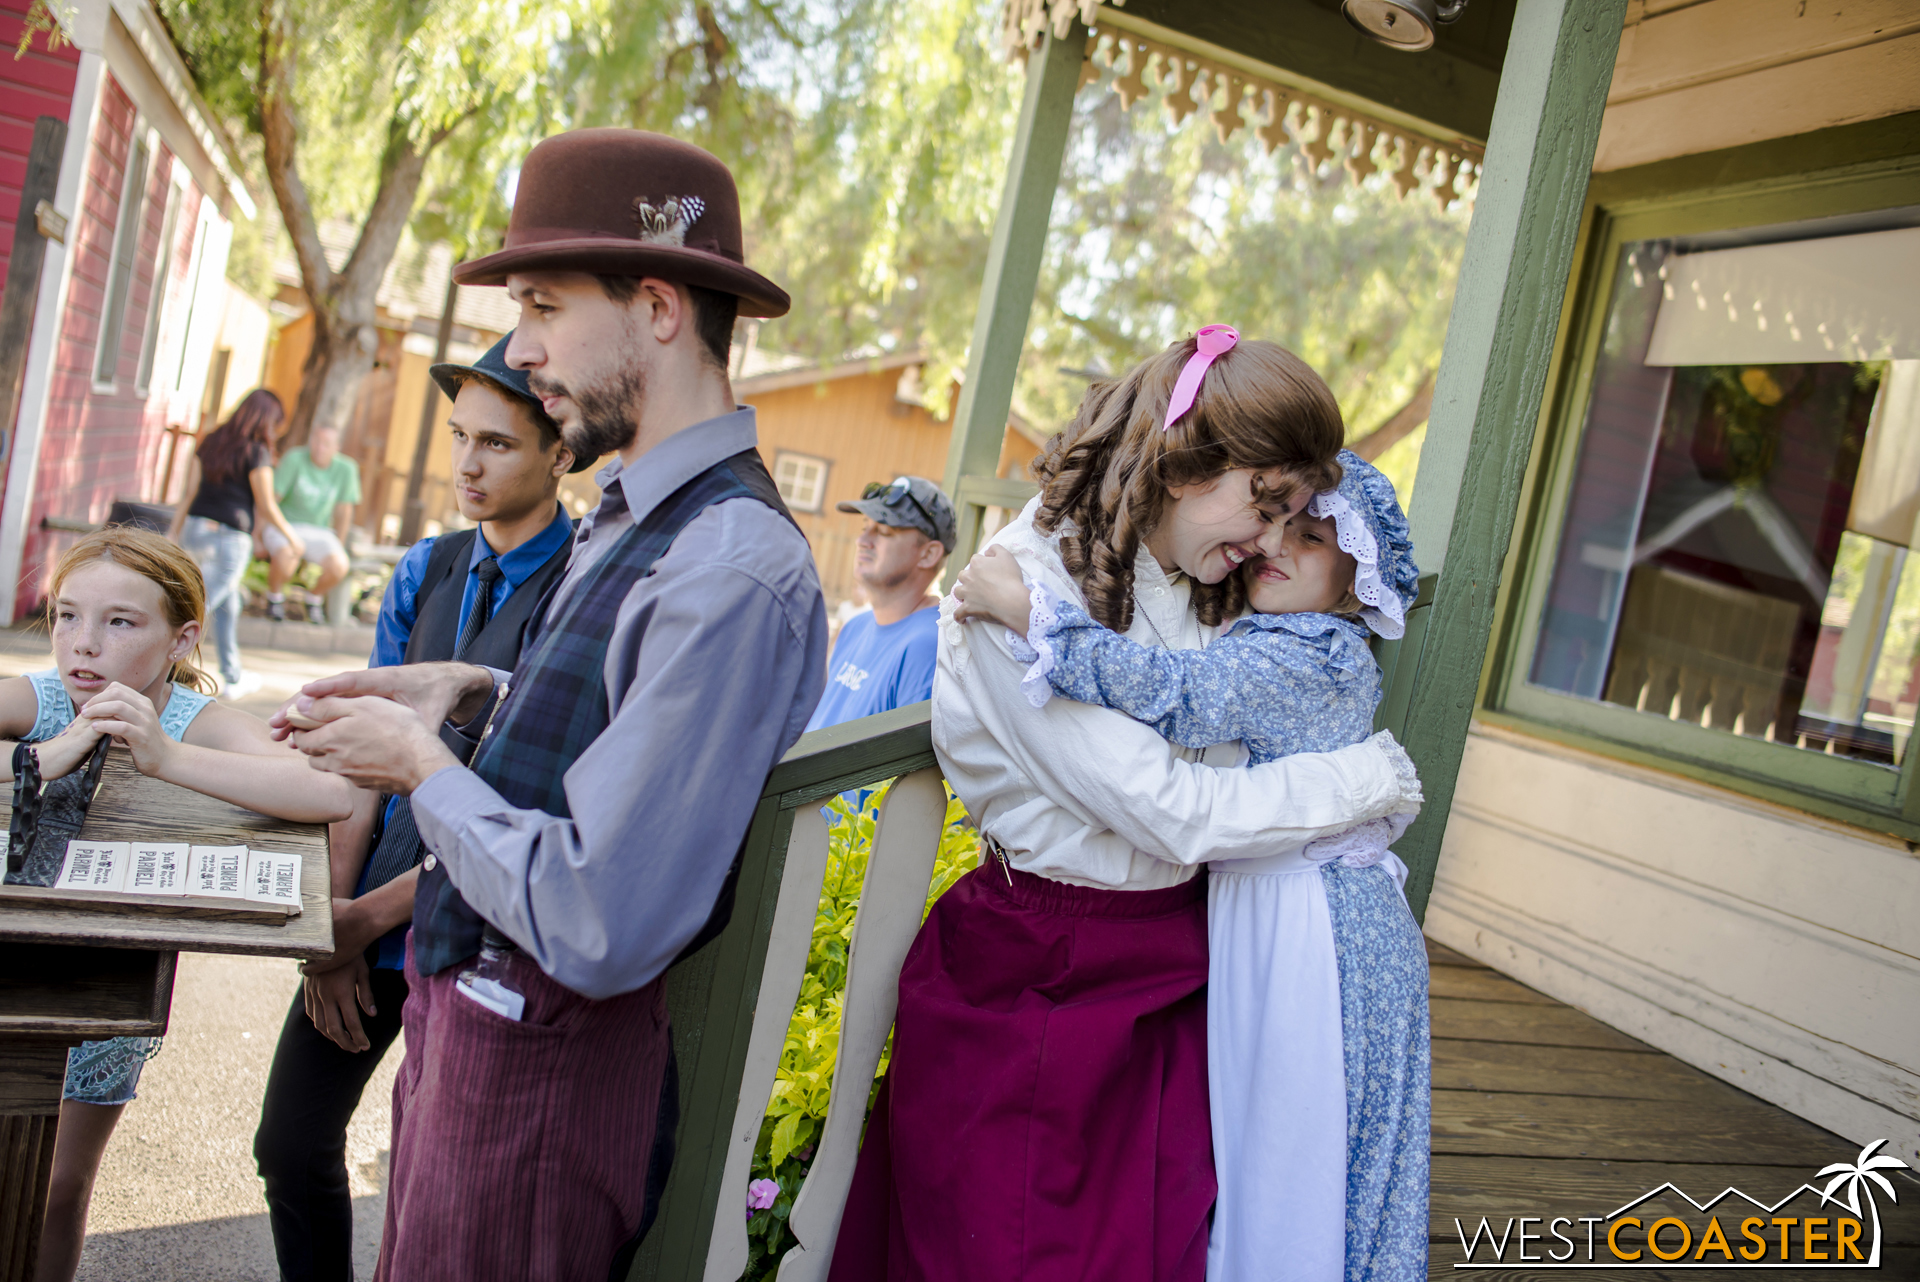 One of many beautiful moments at Ghost Town Alive!, Chelsea gives a young town citizen a hug.  For many kids, Ghost Town Alive! has been a magical experience of live theater, and they have returned on multiple occasions to engage in the production.